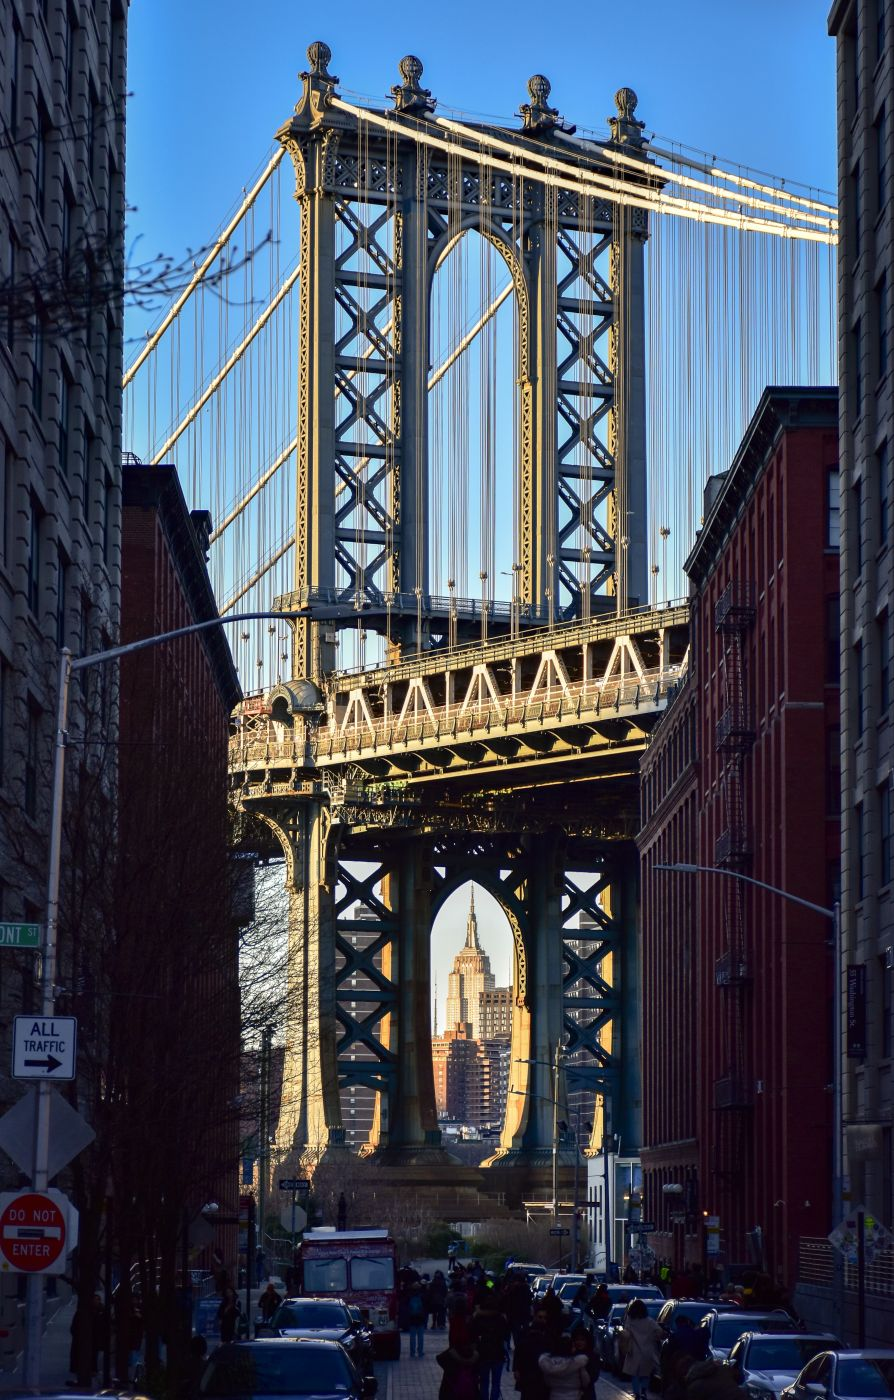 Empire State Building framed by Manhattan Bridge, NY, USA